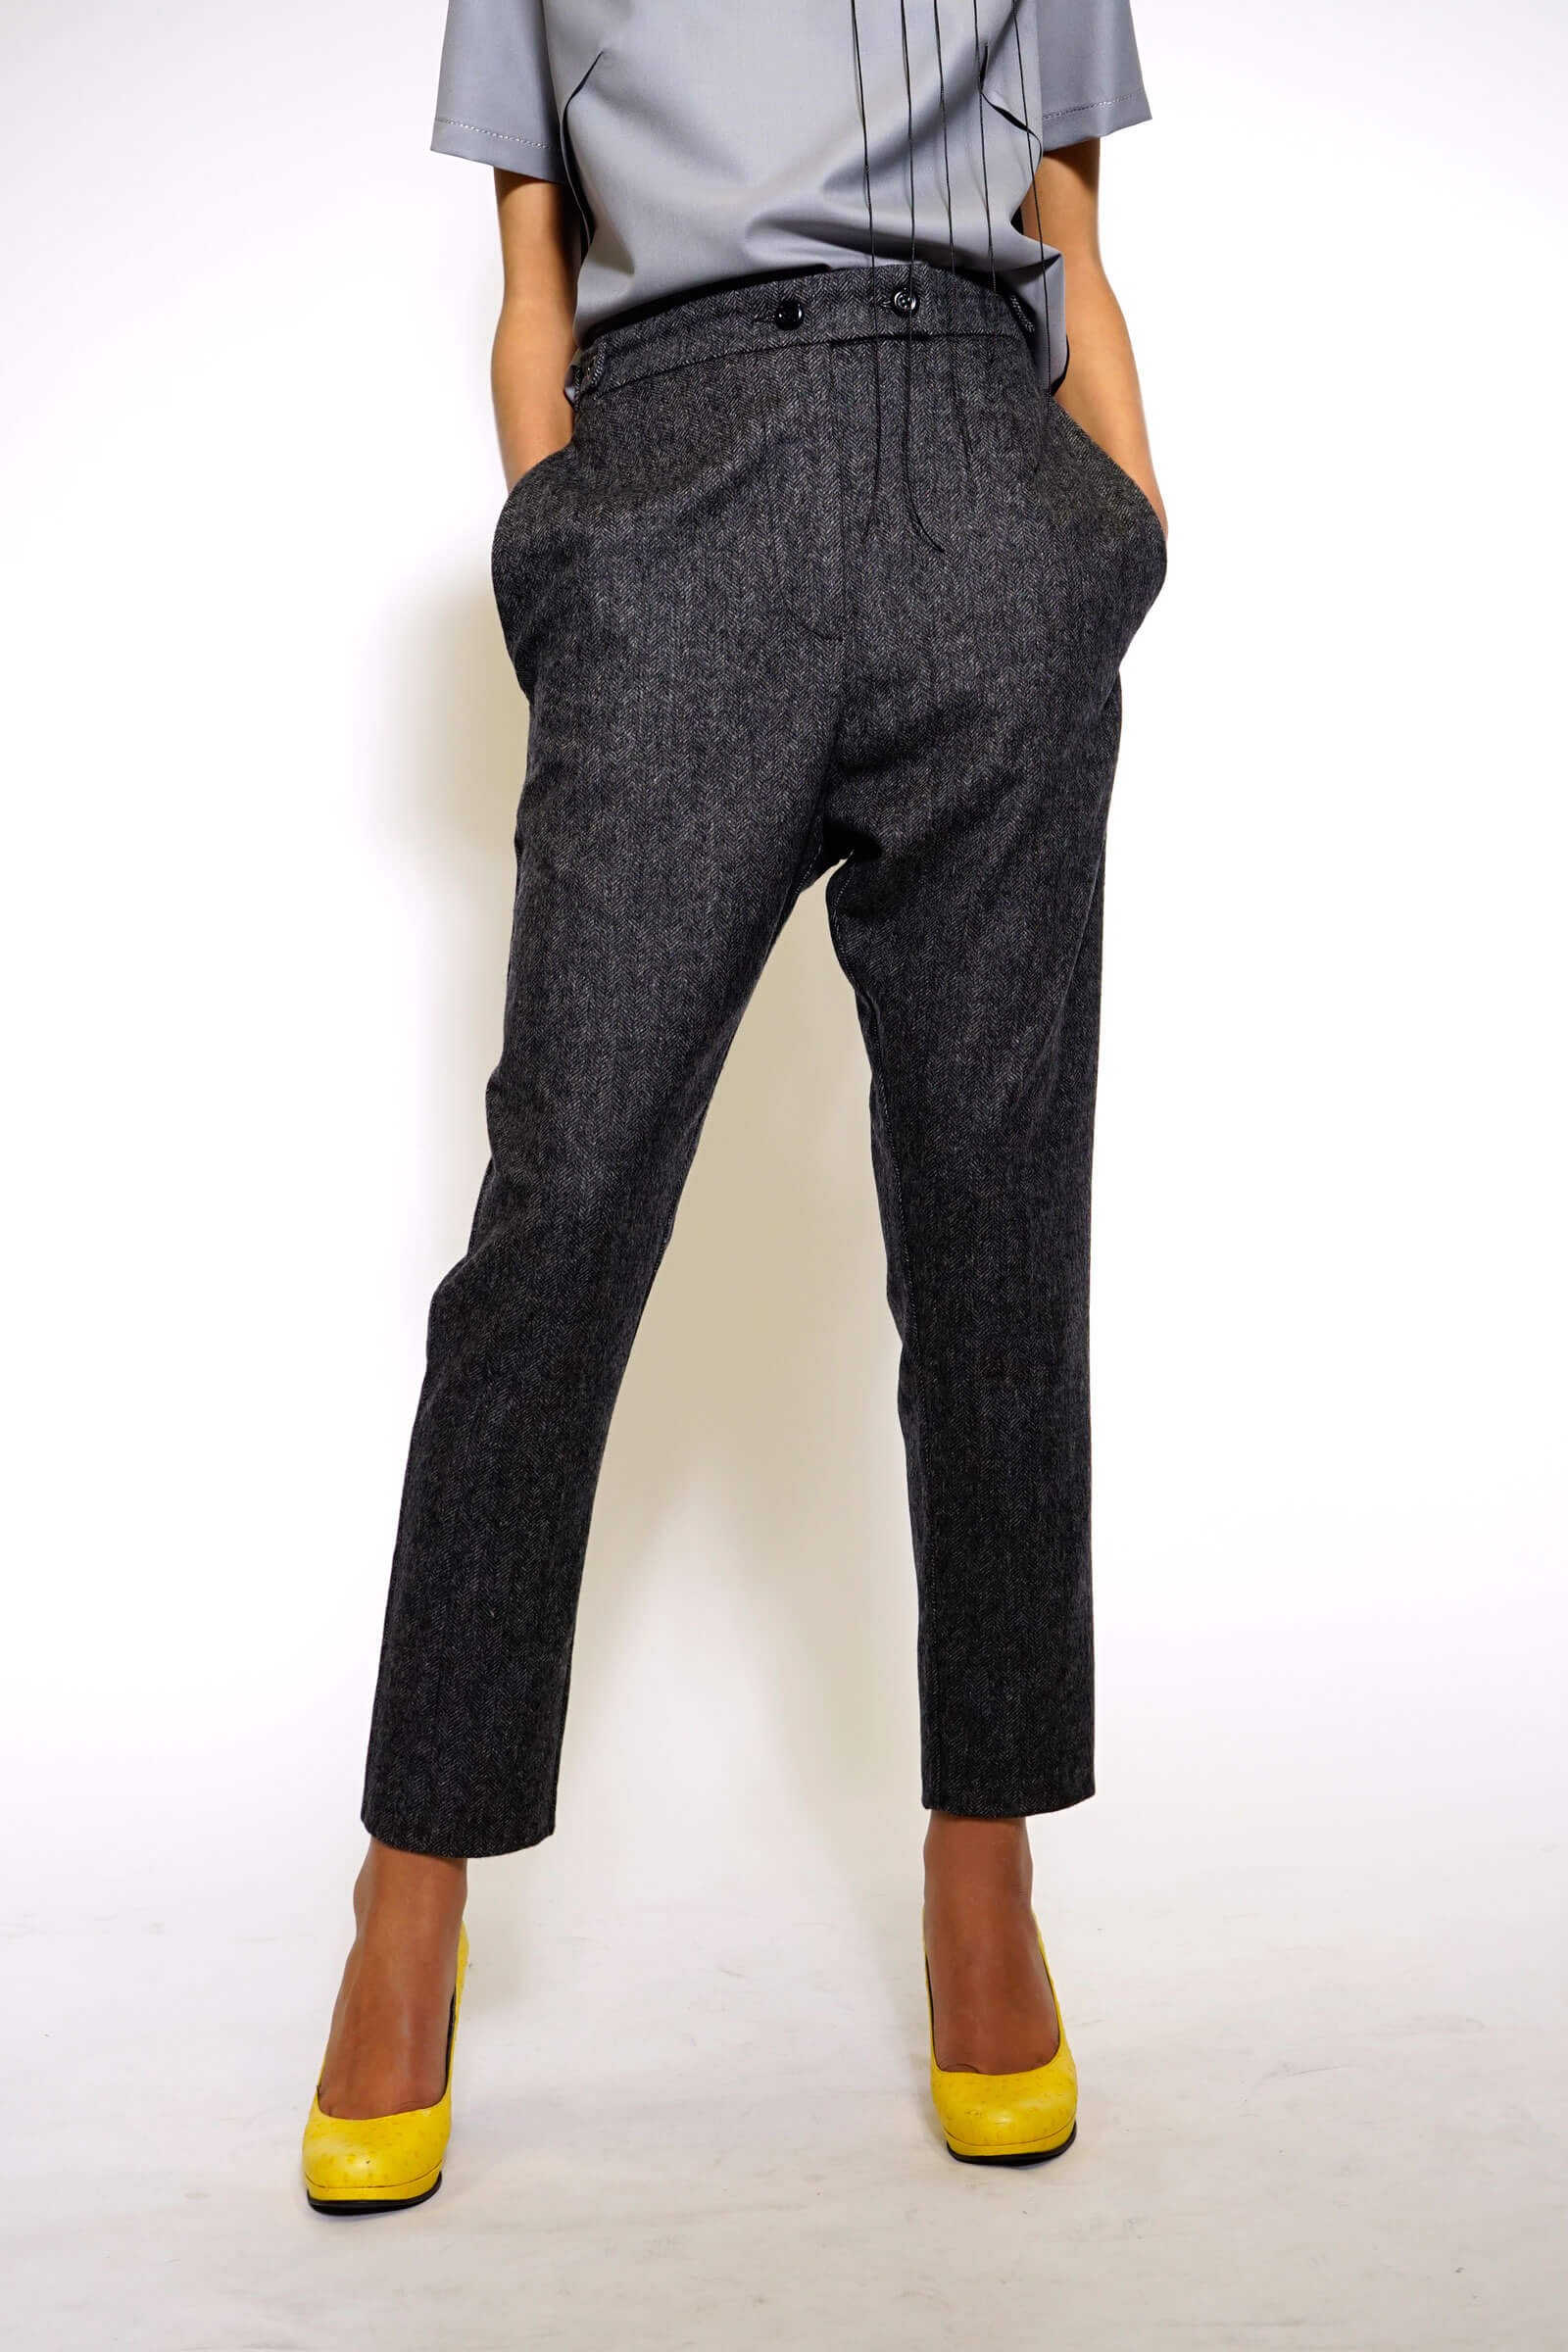 Fir pants with hanging pockets